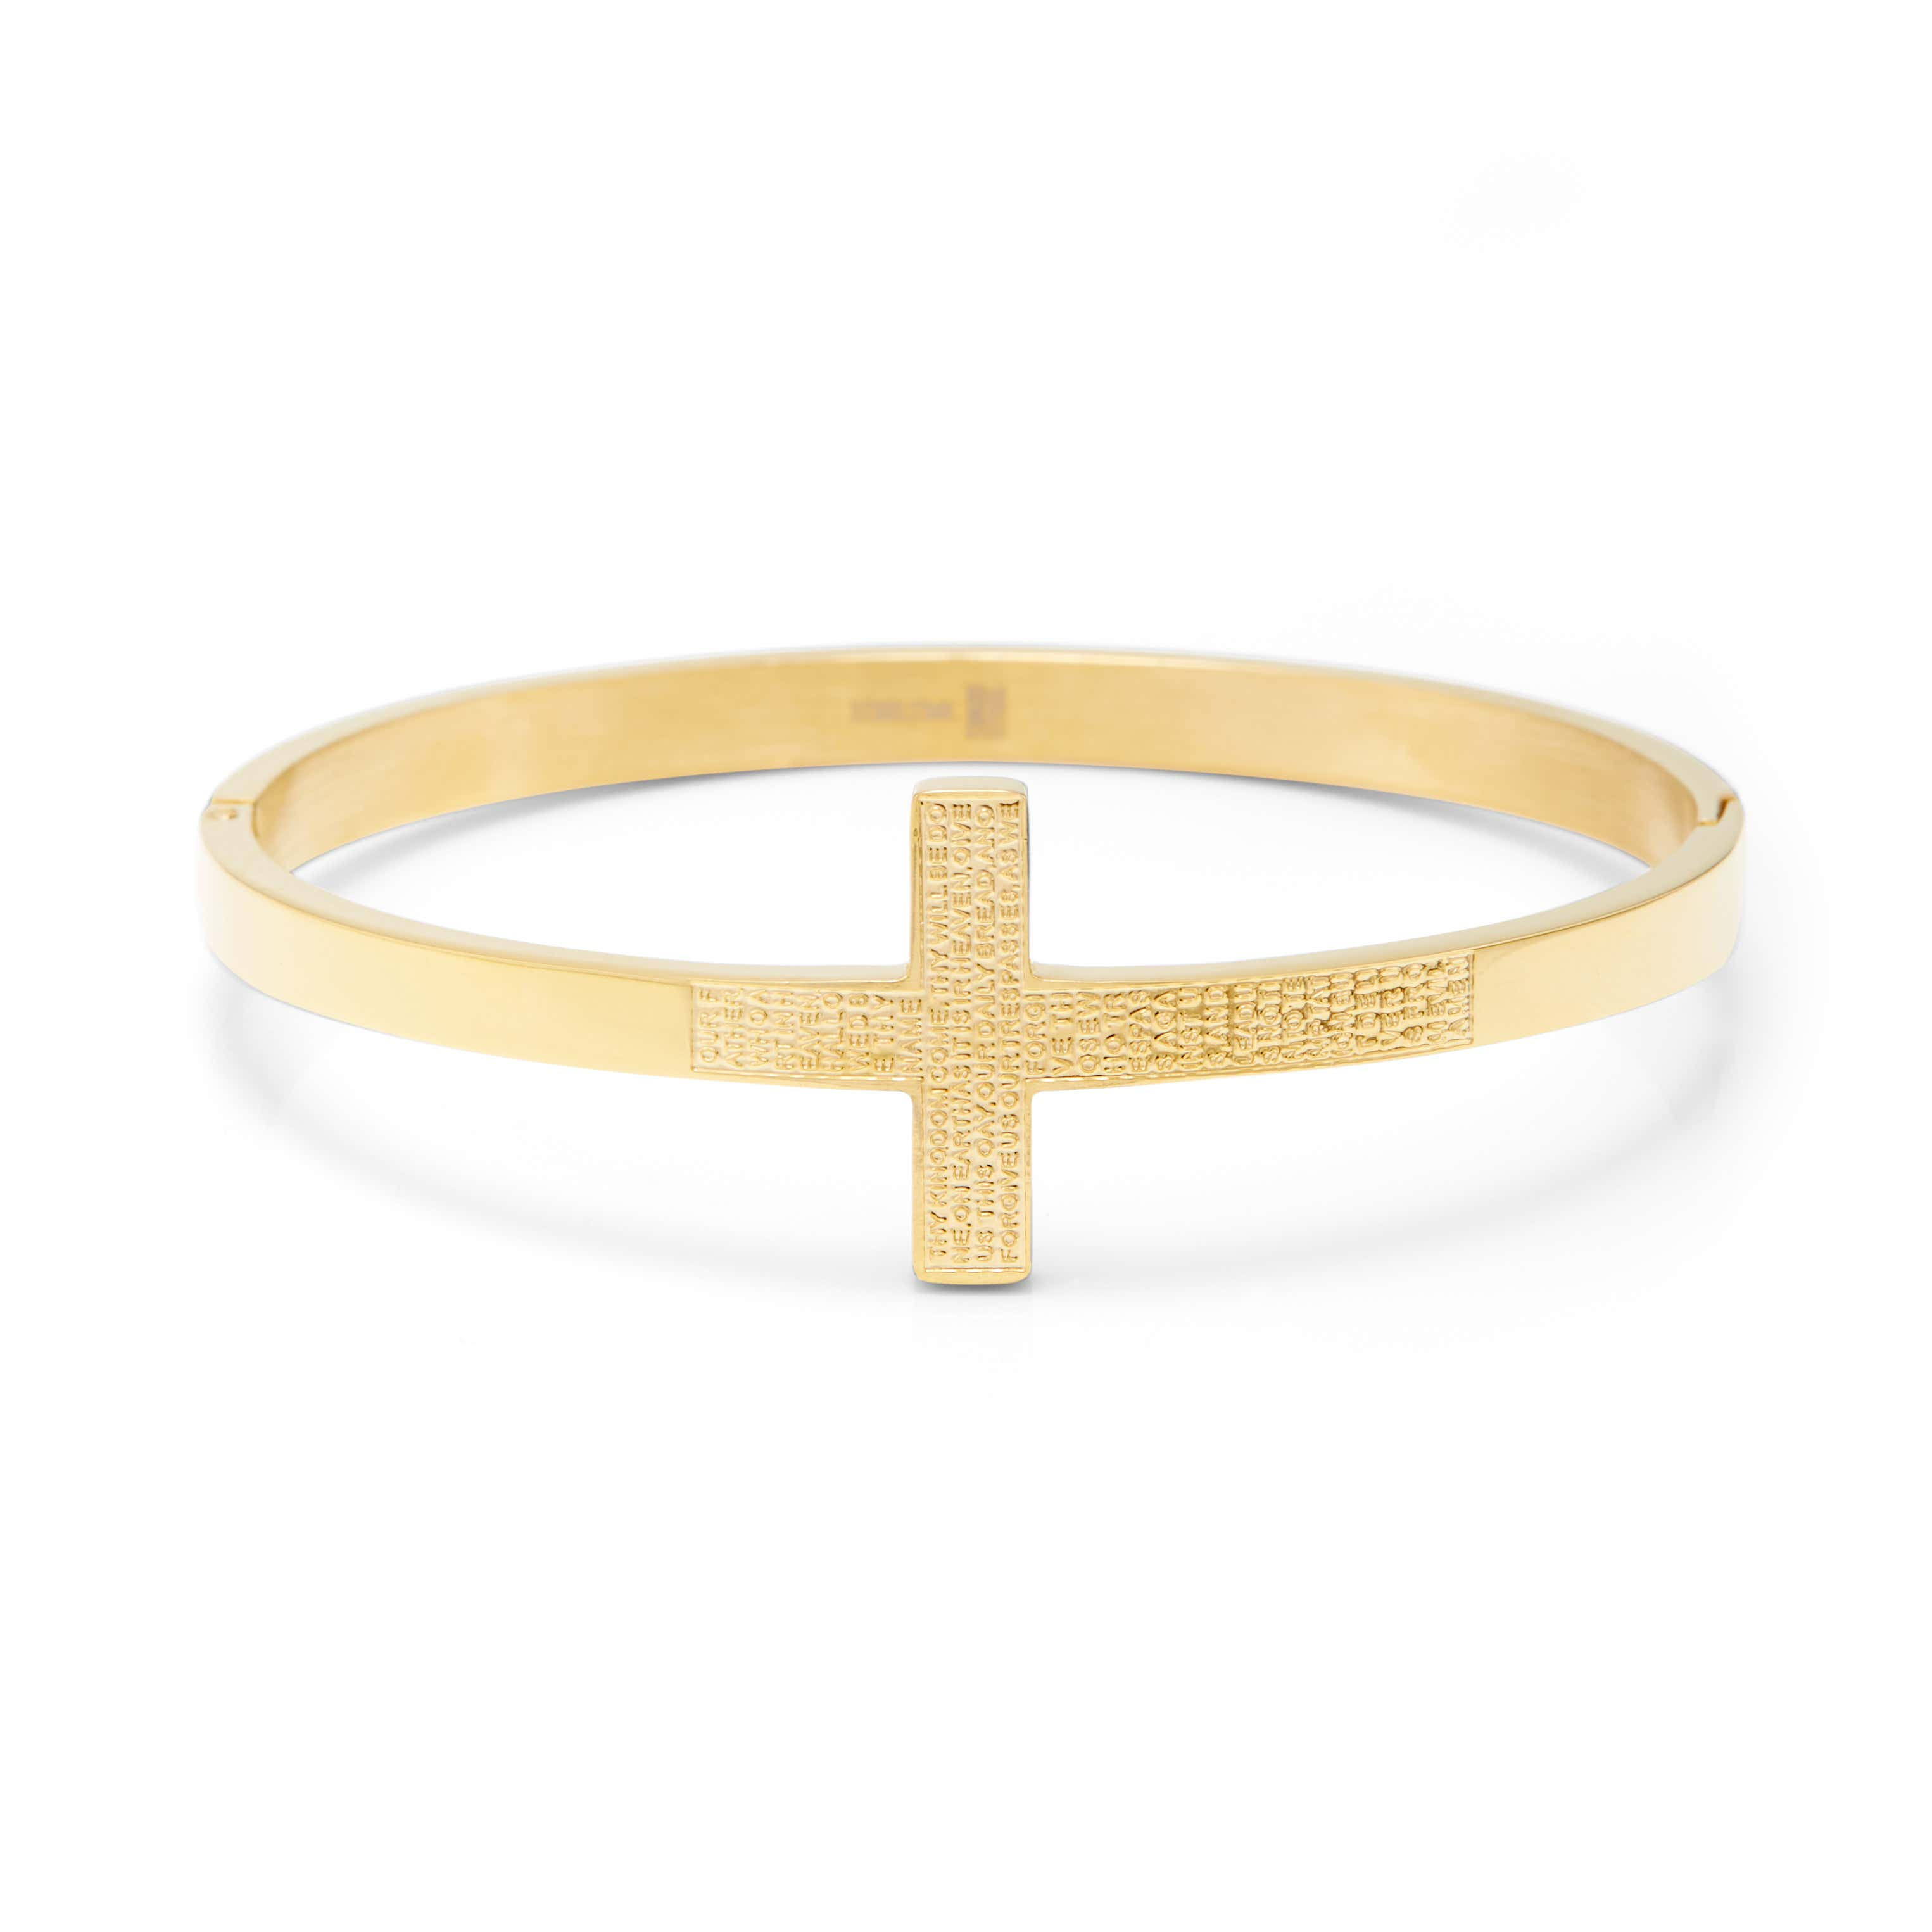 565dab4400e9a Engravable Lord's Prayer Gold Bangle Bracelet